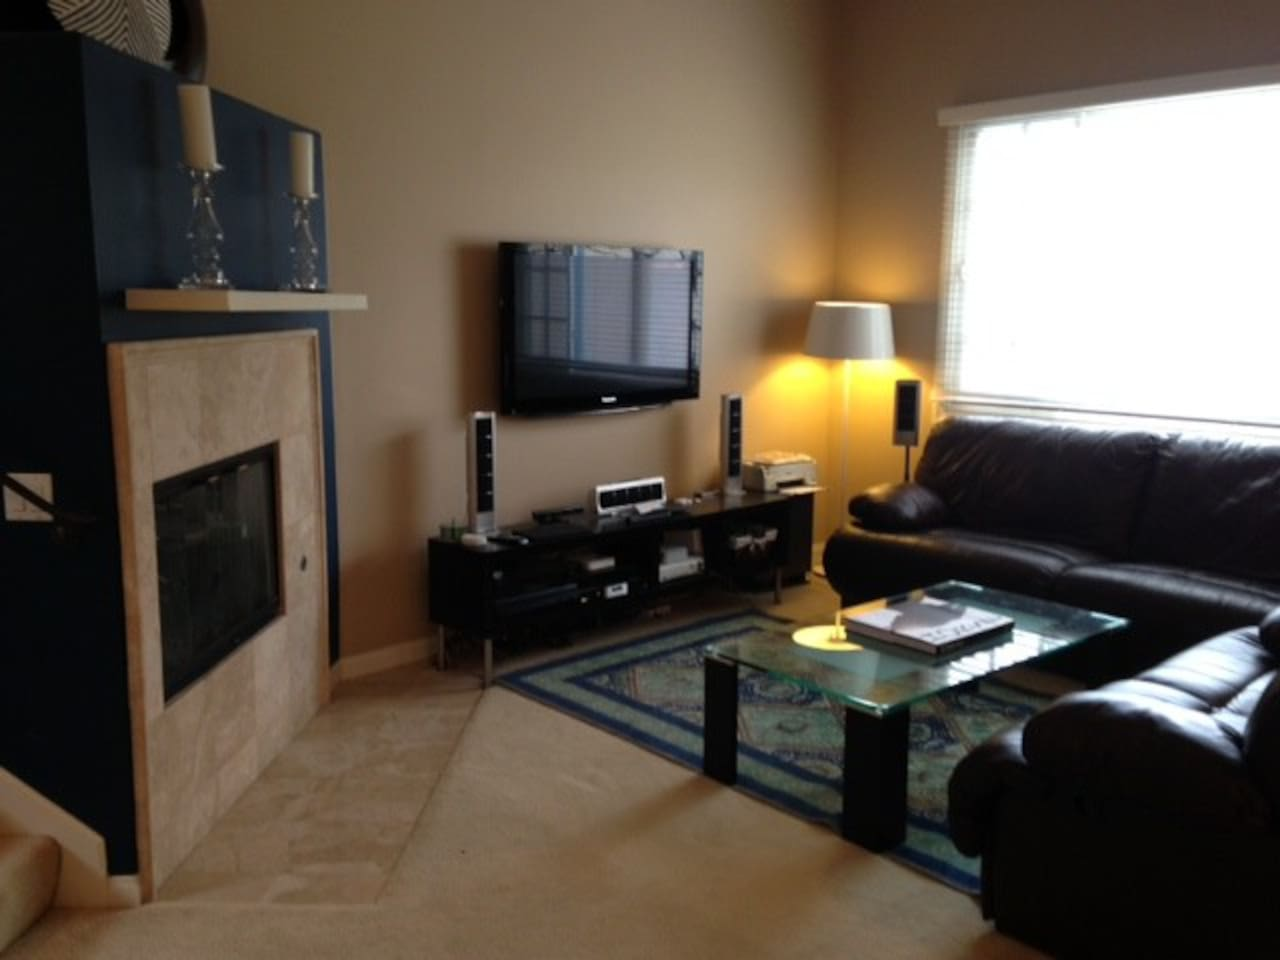 Two large plama televisions and comfortable reclining couches with two fireplaces.